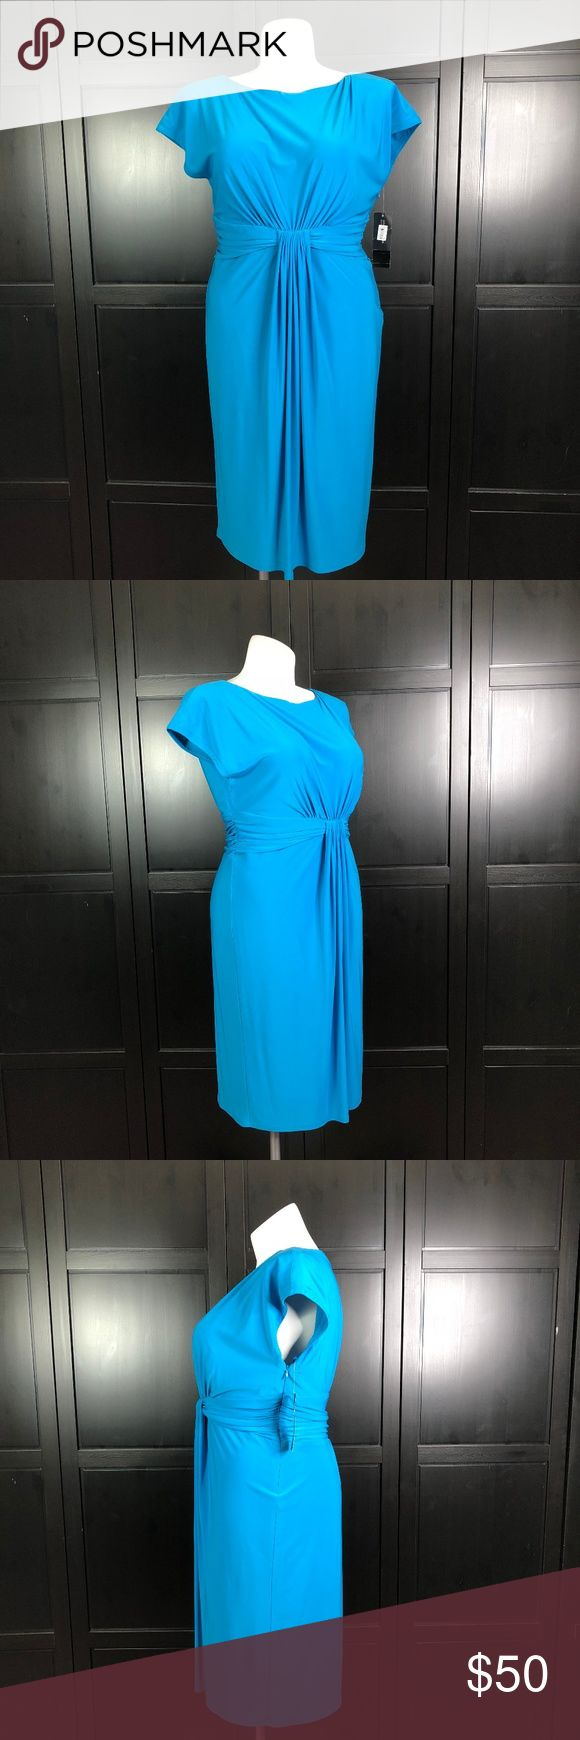 Jones New York Blue Dress Size 16 Brand: Jones New York Color: Blue Size: 16 Material: Polyester Made in China Sleeve Length: None Shoulder Length: 18in Total Length: 40in Bust: 39in Jones New York Dresses